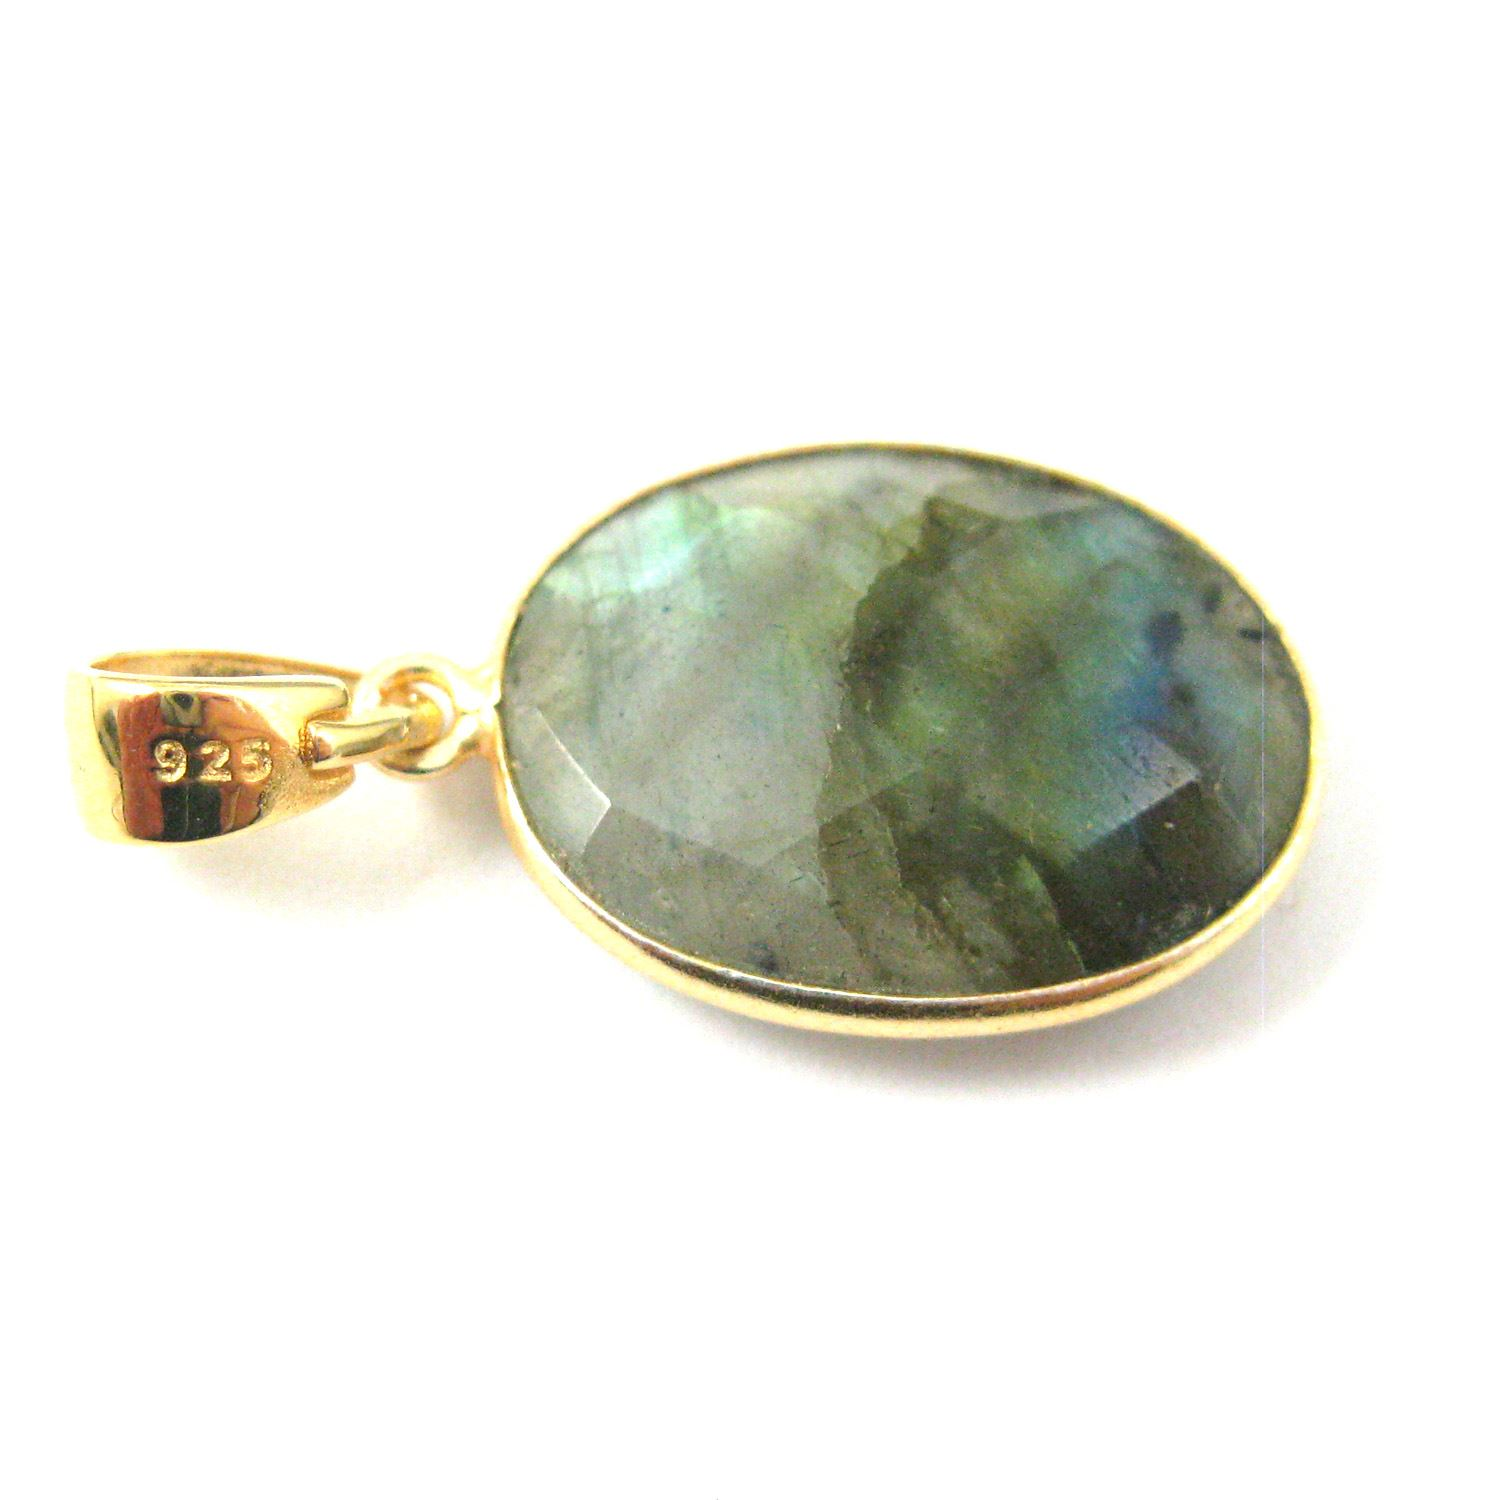 Bezel Gemstone Pendant with Bail - Gold plated Sterling Silver Oval Gem Pendant - Ready for Necklace - 28mm - Labradorite